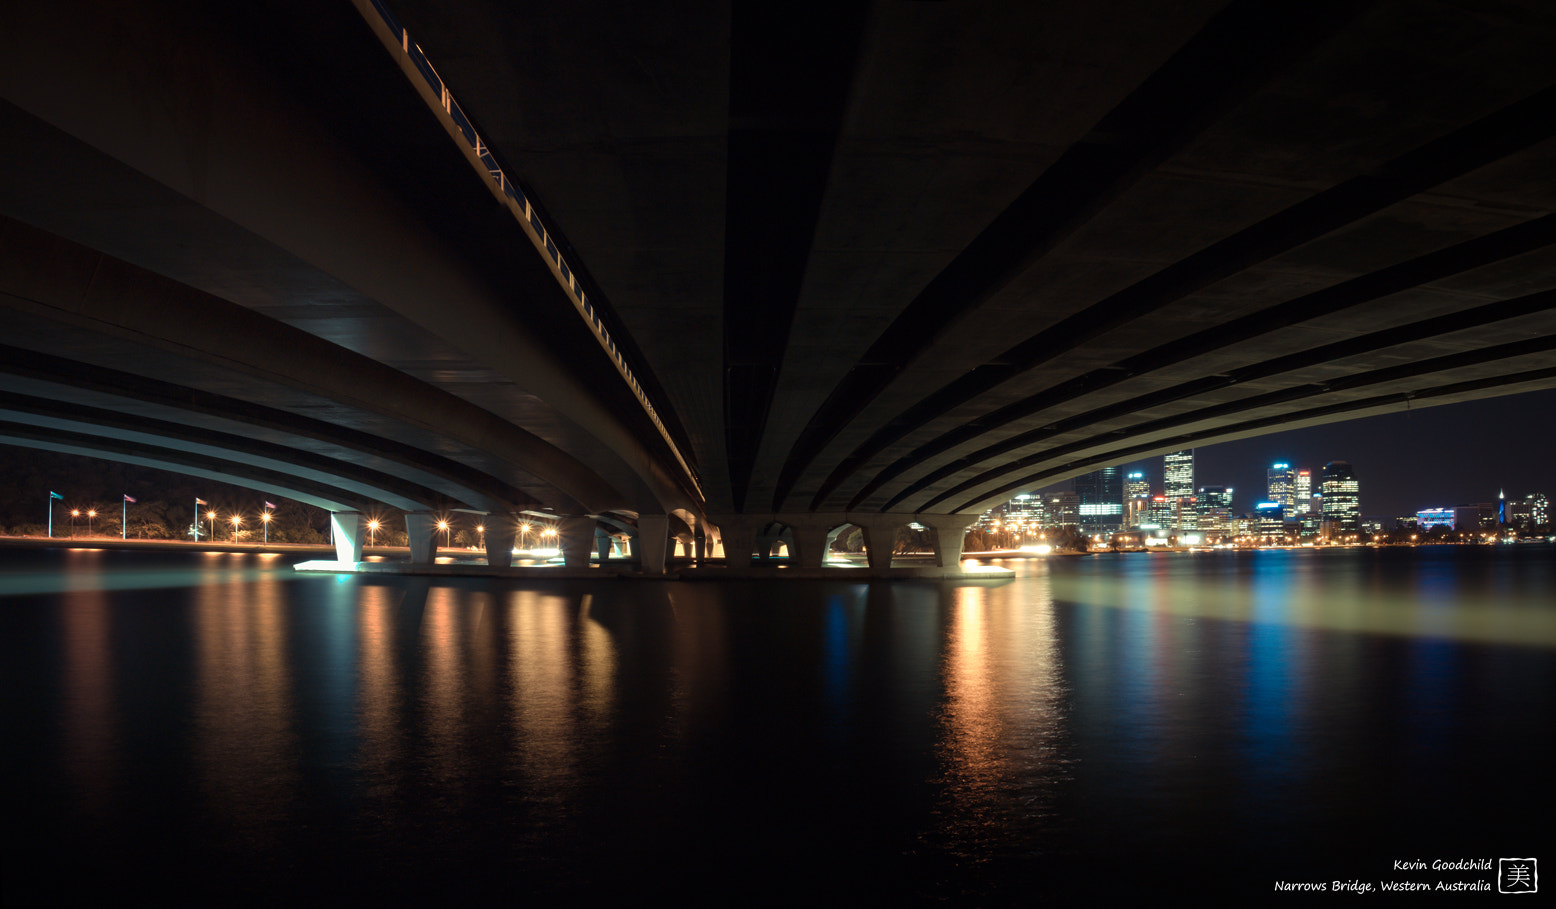 Photograph Narrows by Kevin Goodchild on 500px